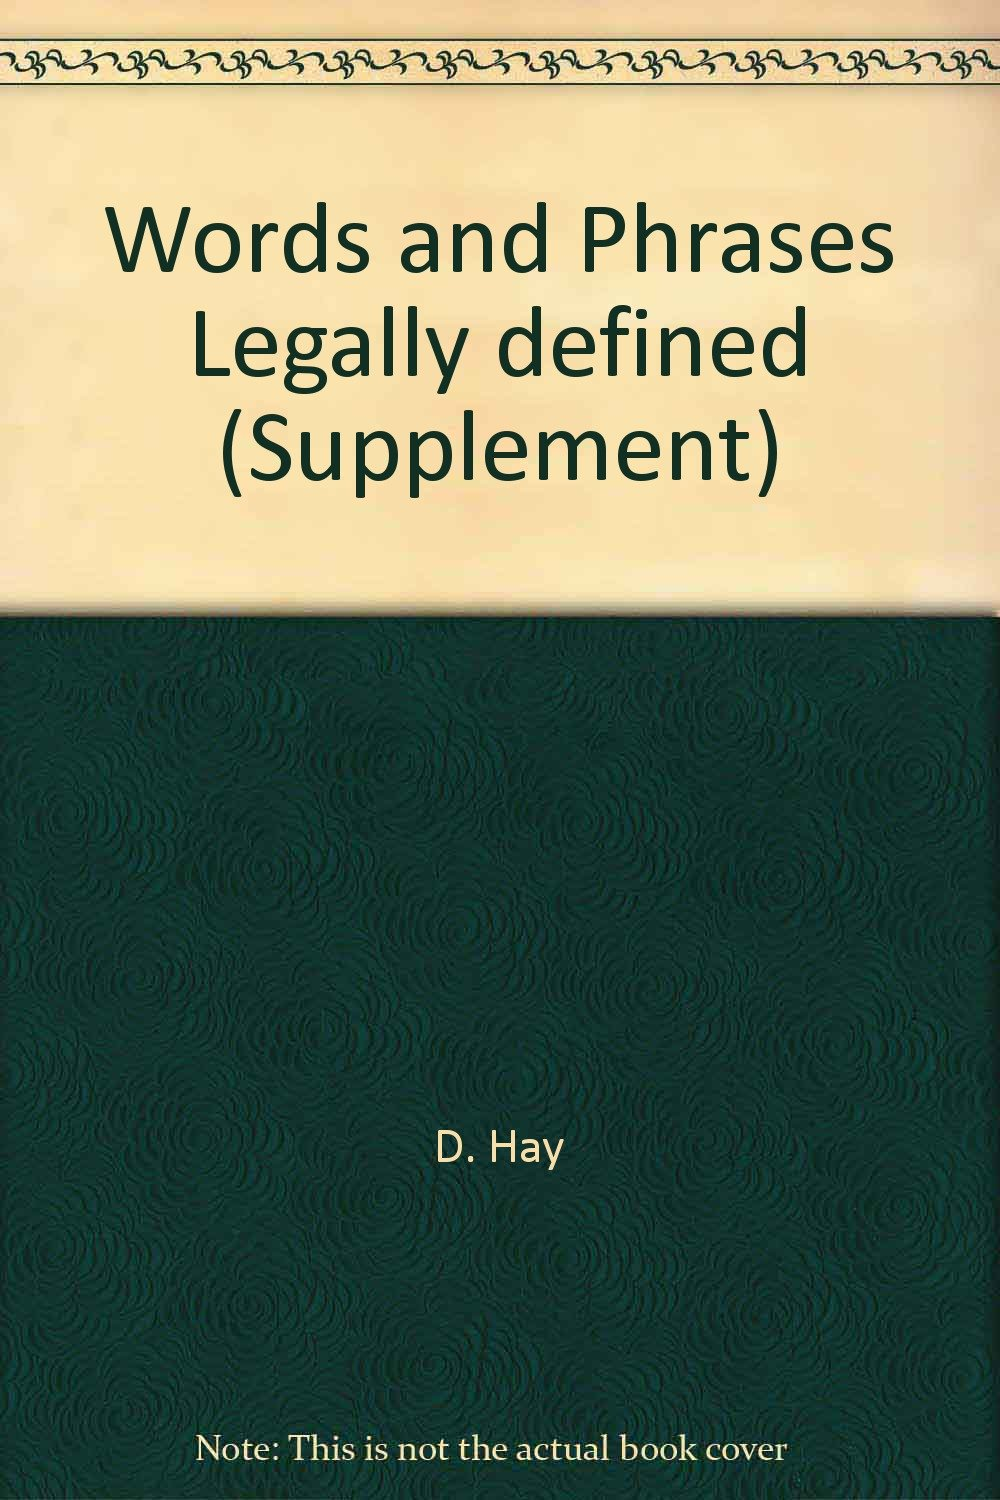 Words and Phrases Legally defined (Supplement): D. Hay: Amazon.com: Books